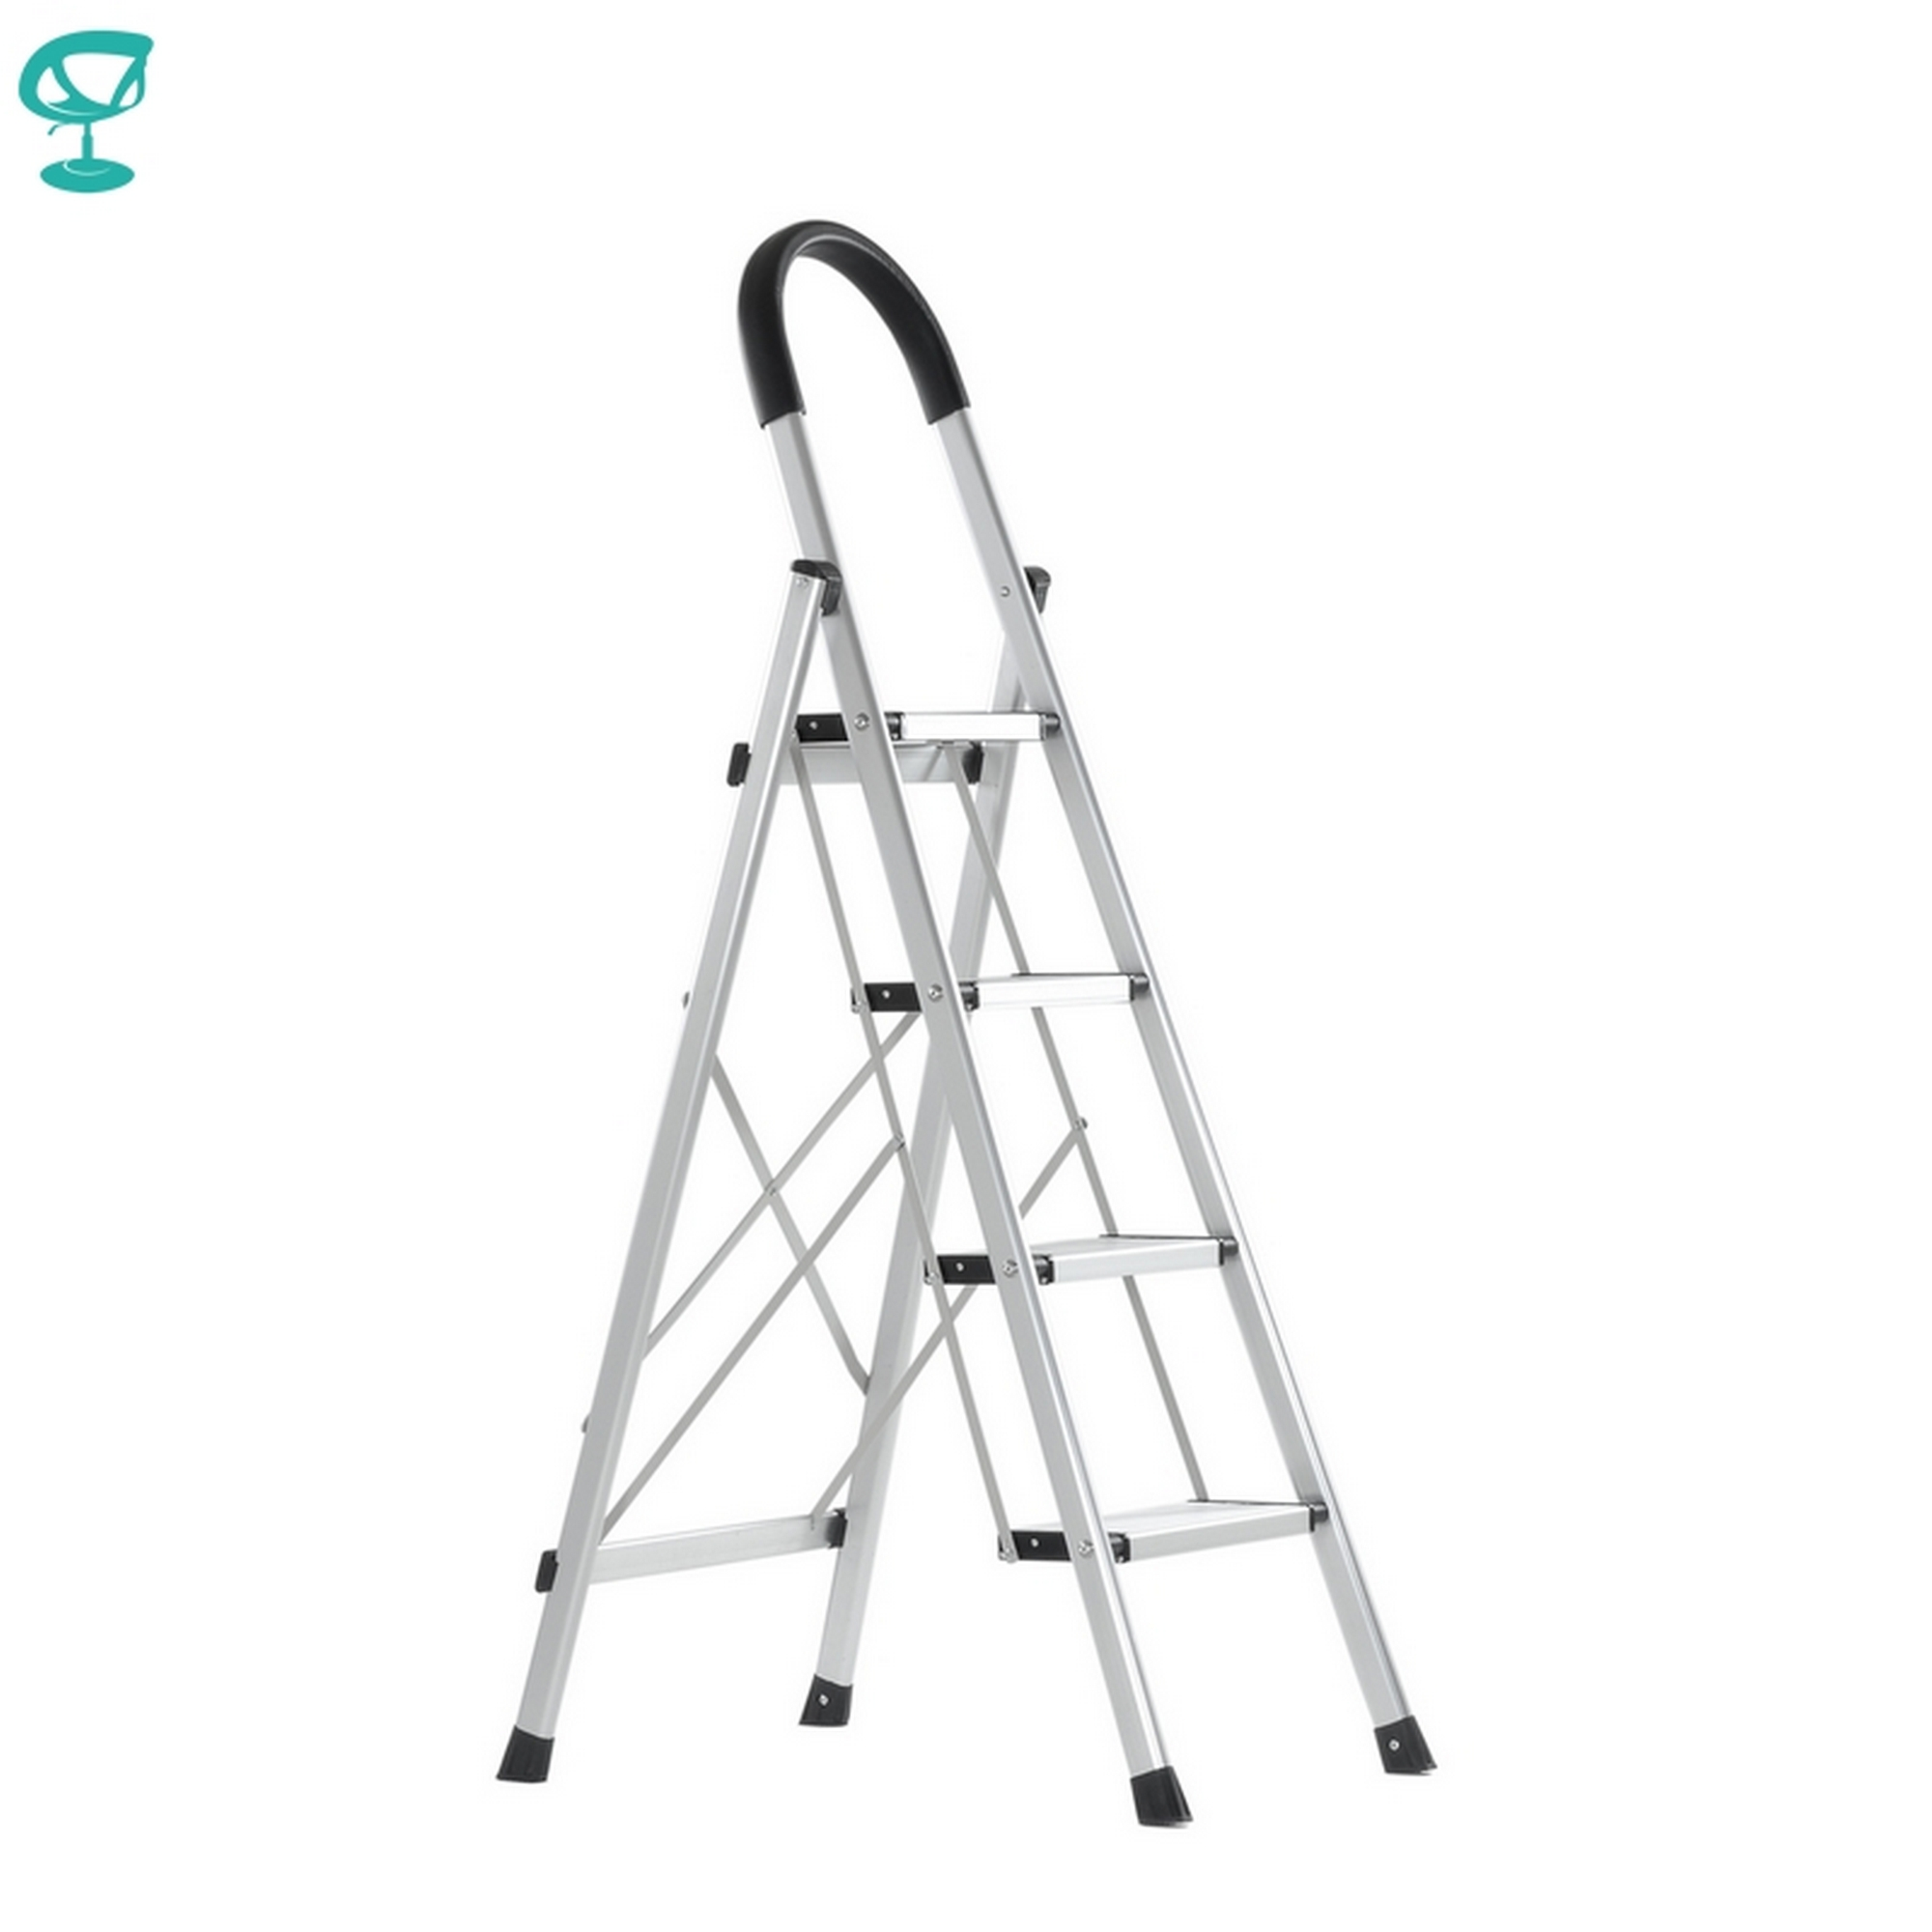 95675 Barneo ST-24 Ladder Aluminum 4 Steps Of Single Side Max Load 150 Kg Free Shipping To Russia